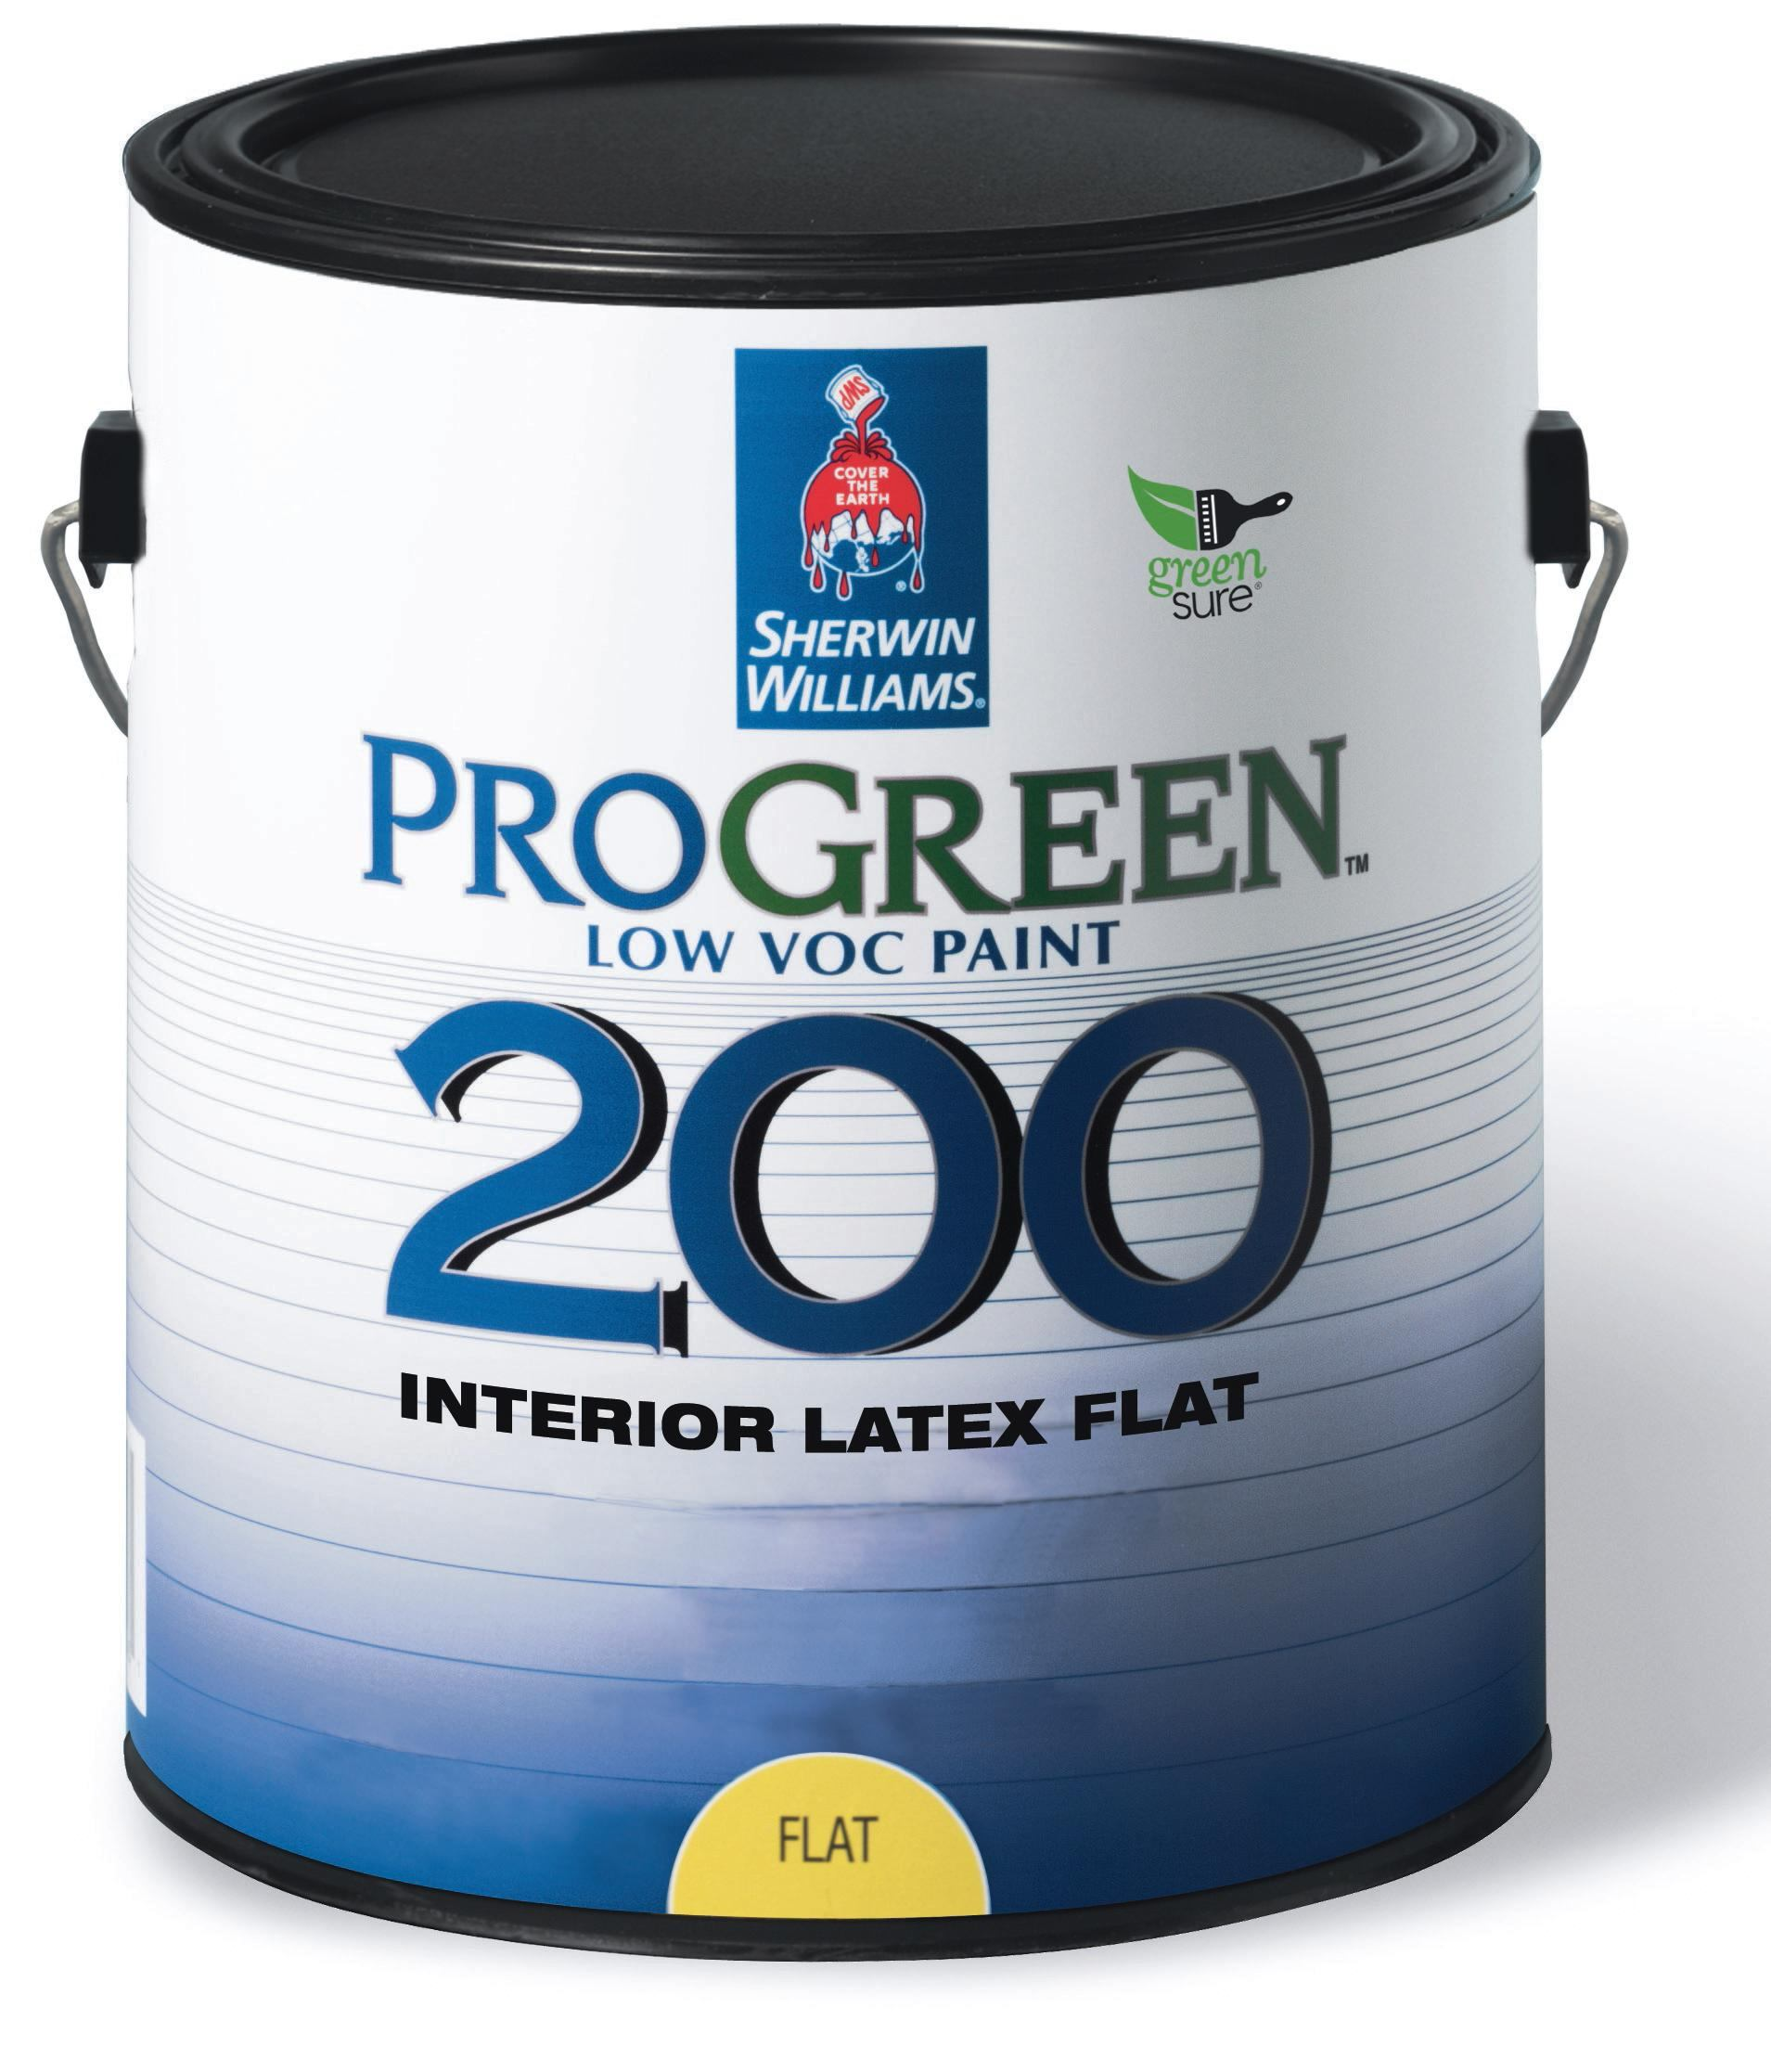 low voc paint progreen 200 from sherwin williams architect magazine 12008